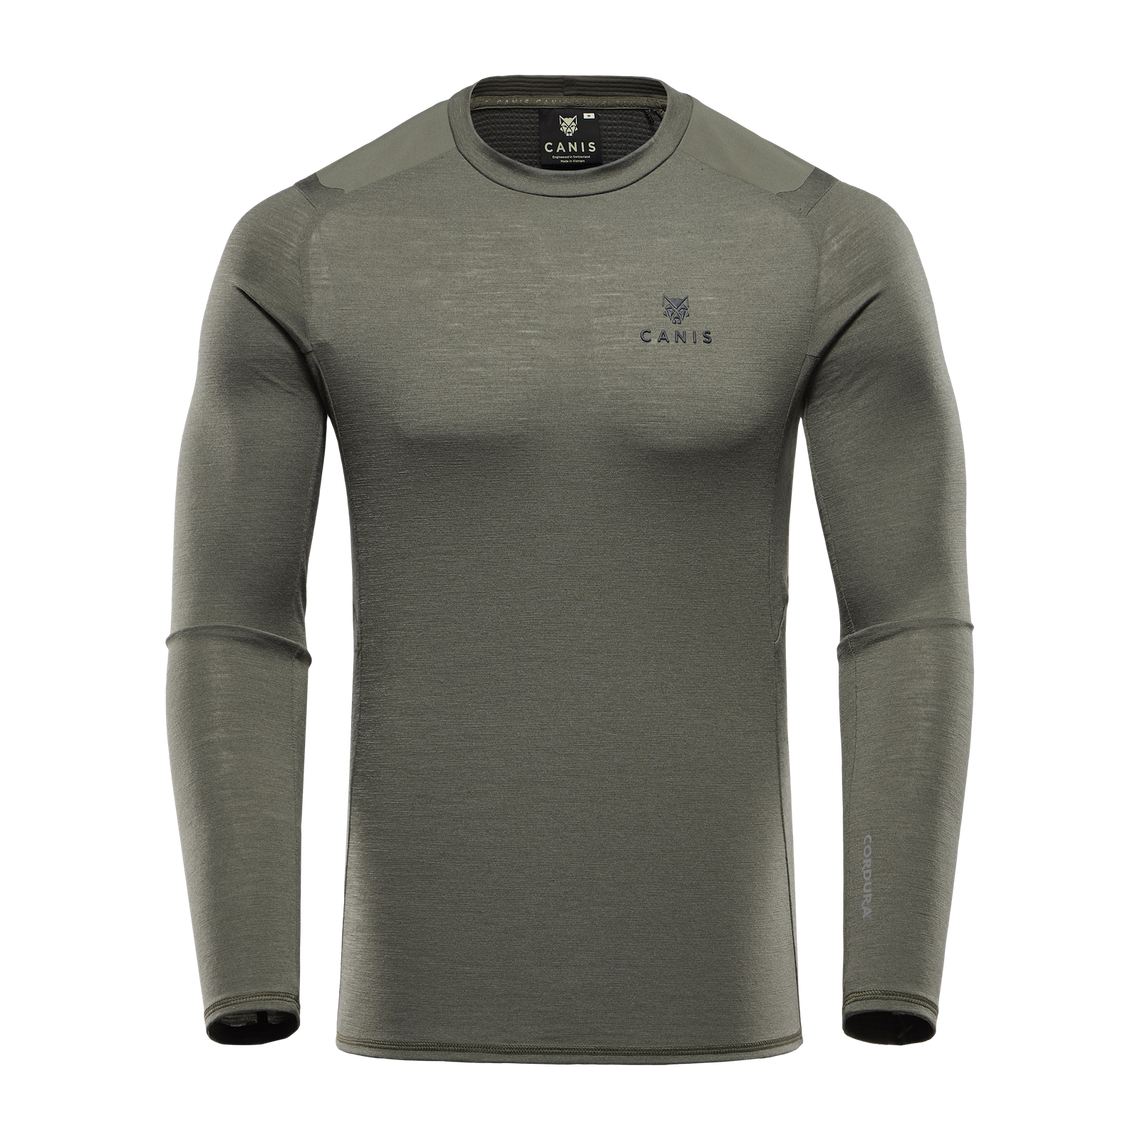 Tahr Merino Long Sleeve Shirt